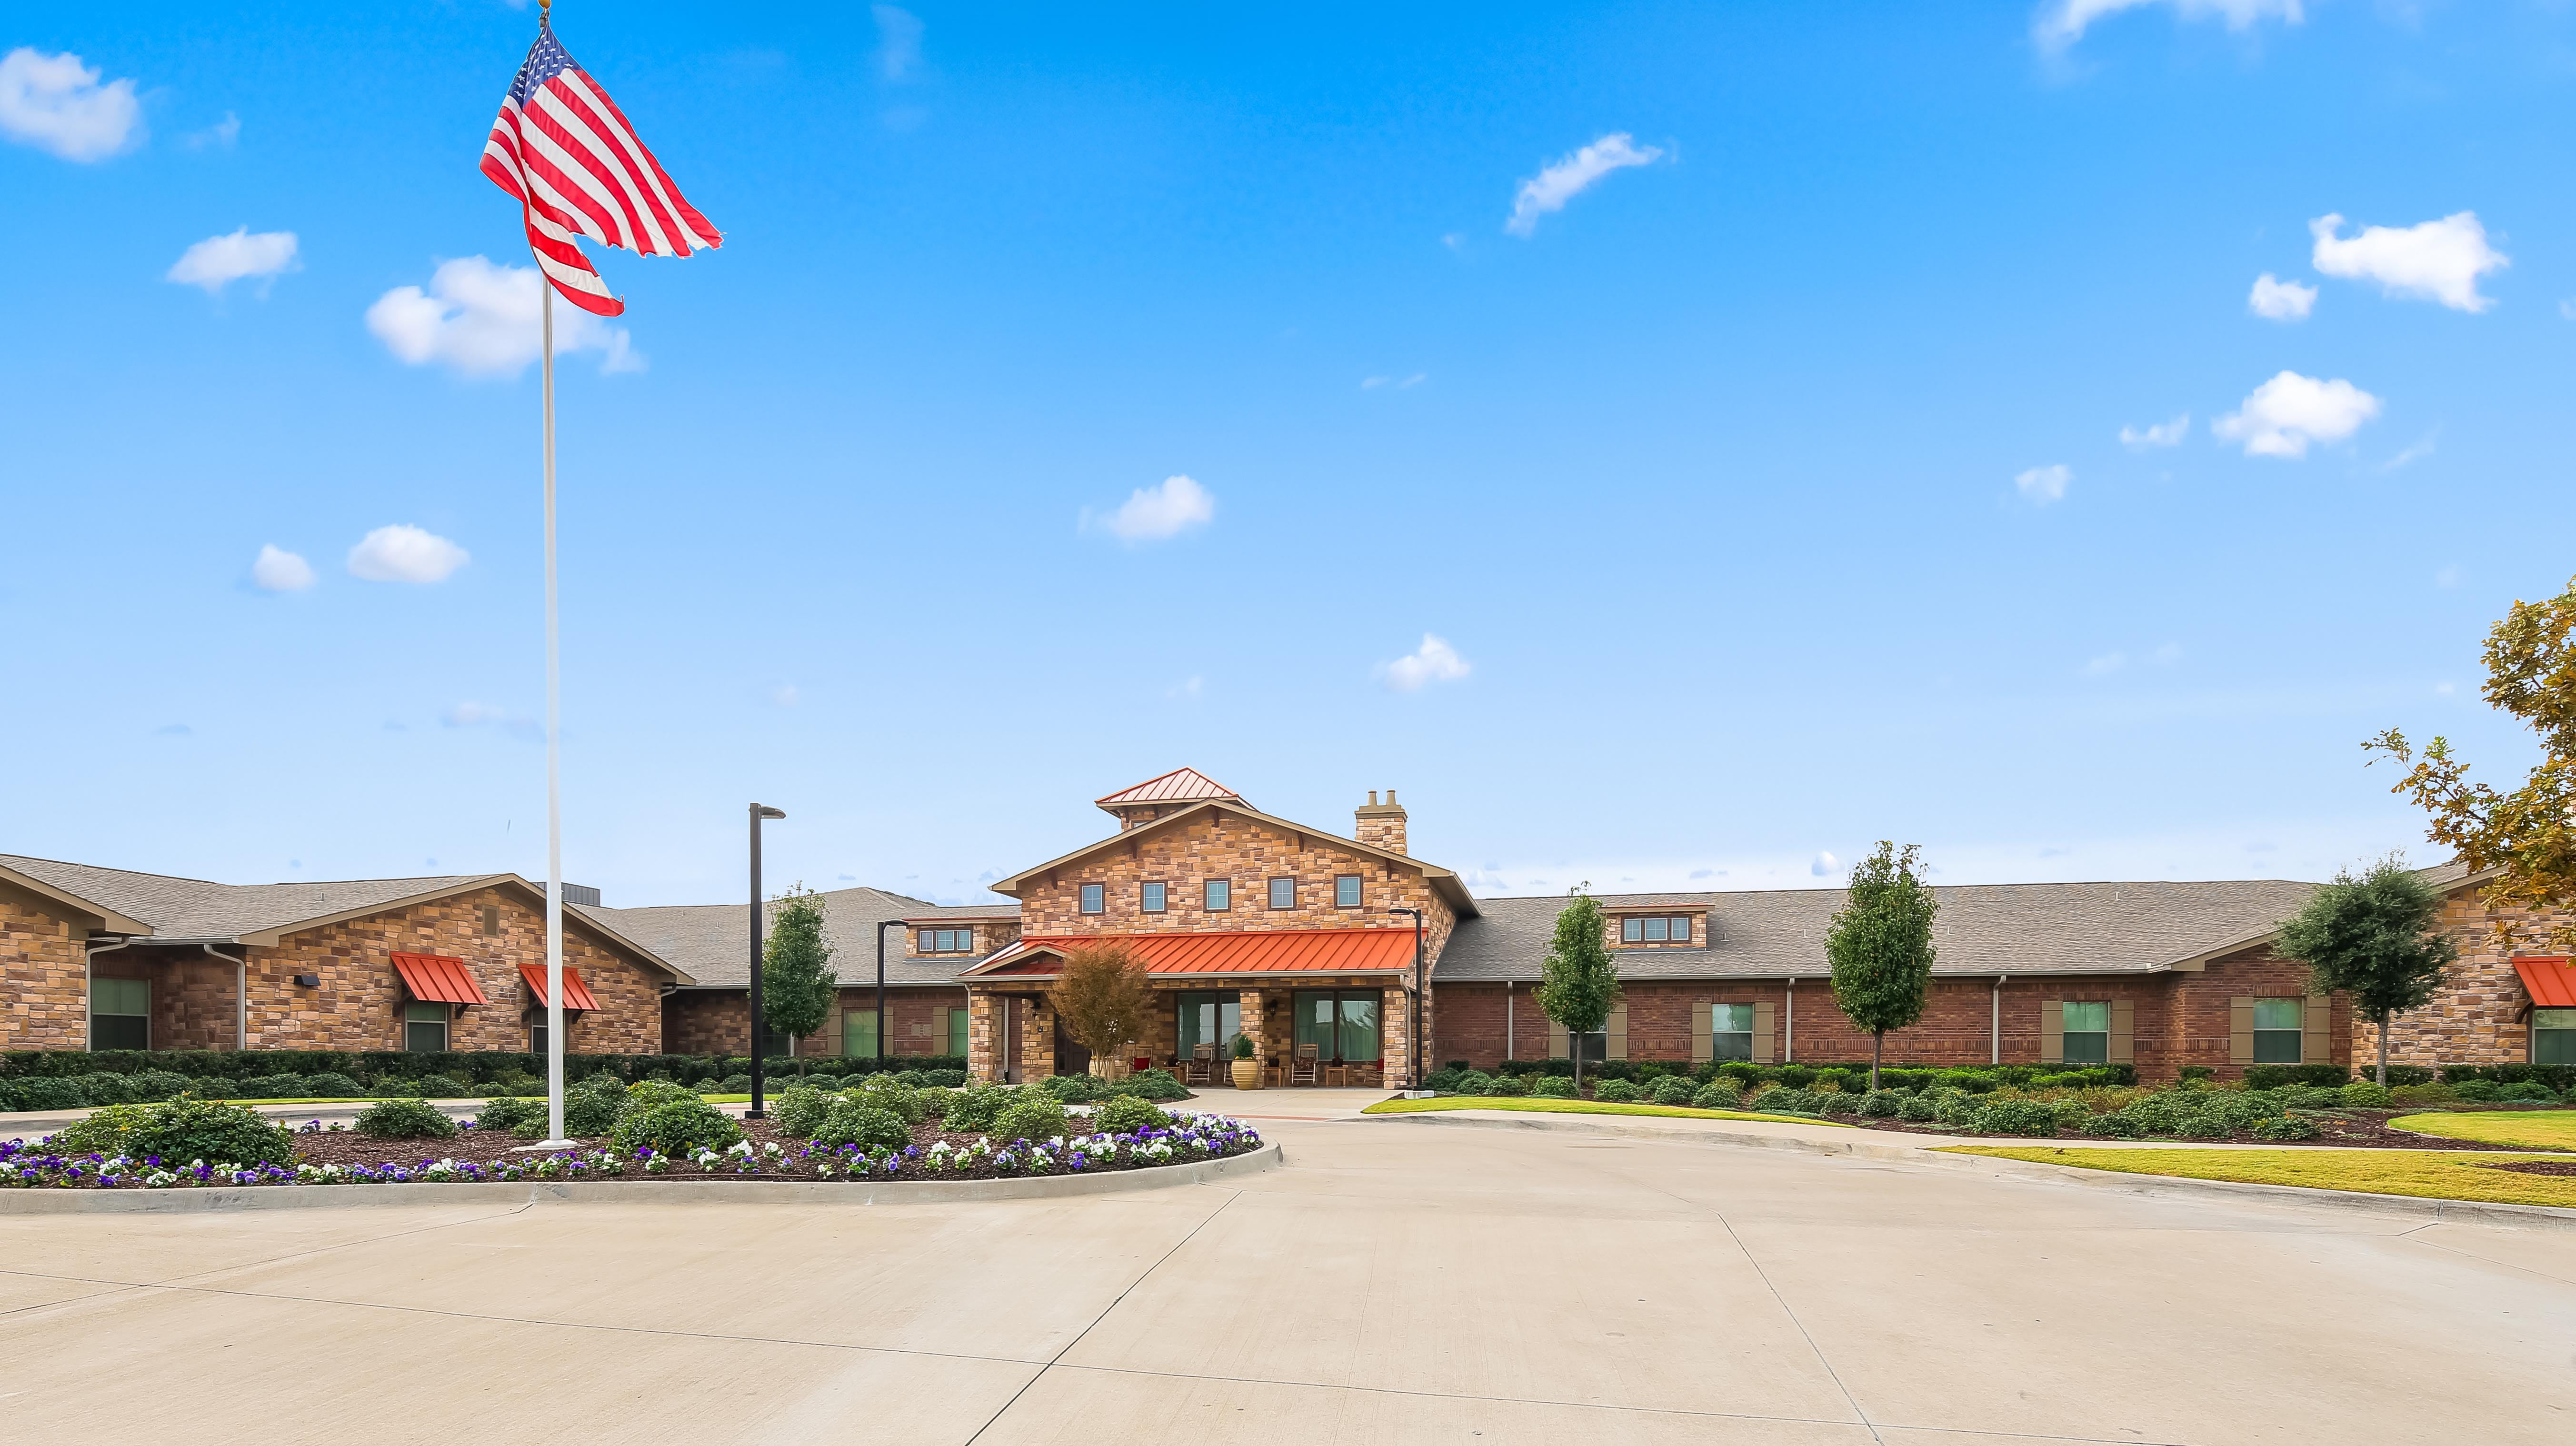 Photo 1 of Rock Ridge Assisted Living and Memory Care